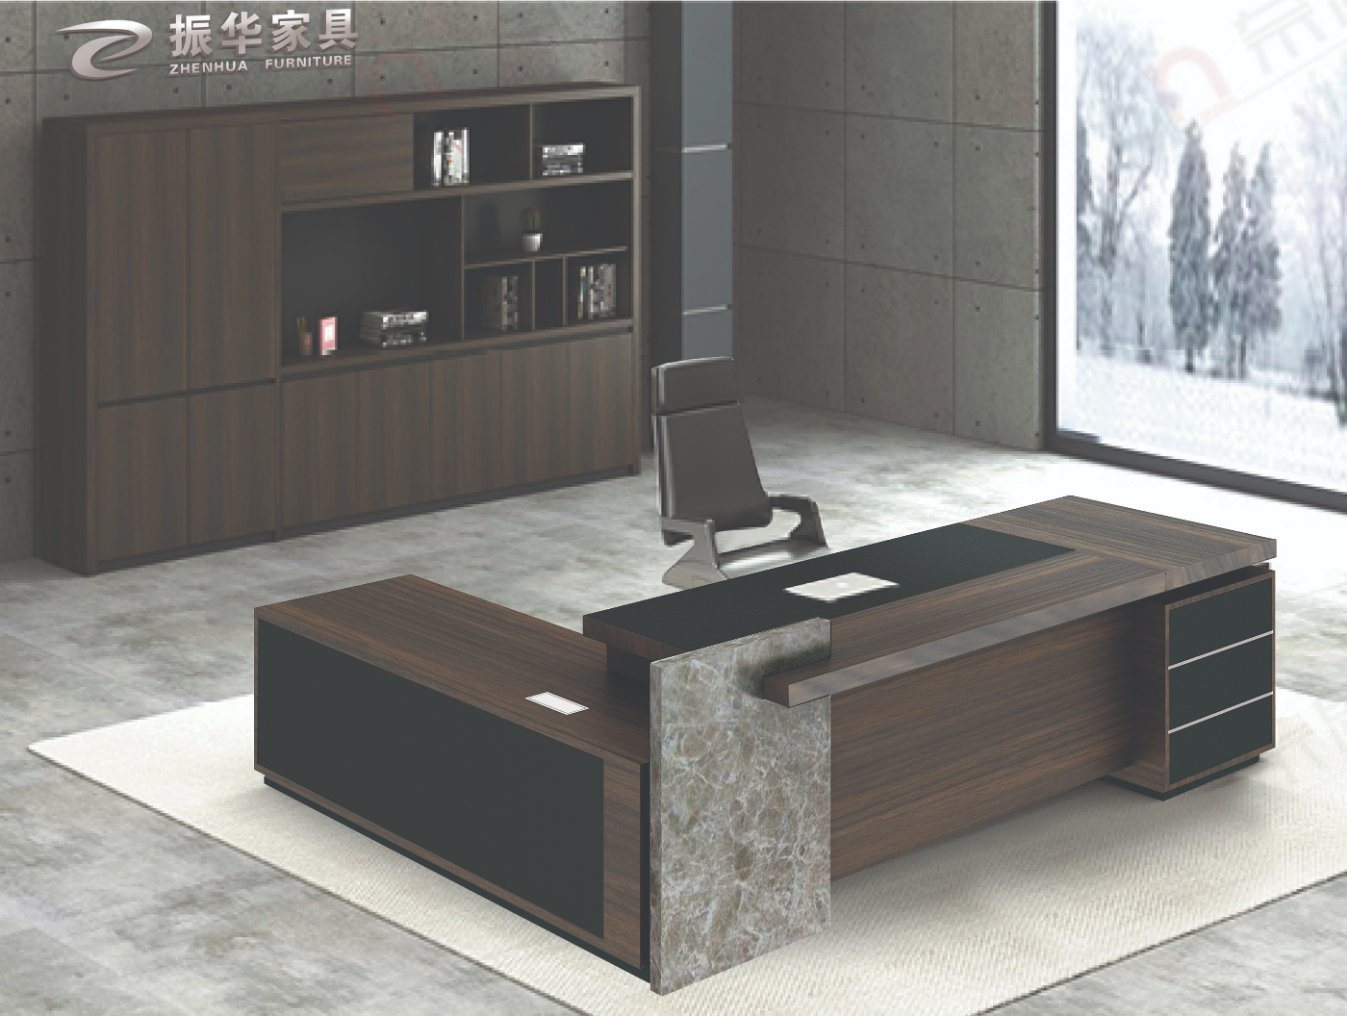 Image of: China High Tech Executive Wood Modern L Shaped Office Desk Table China Office Table Office Furniture